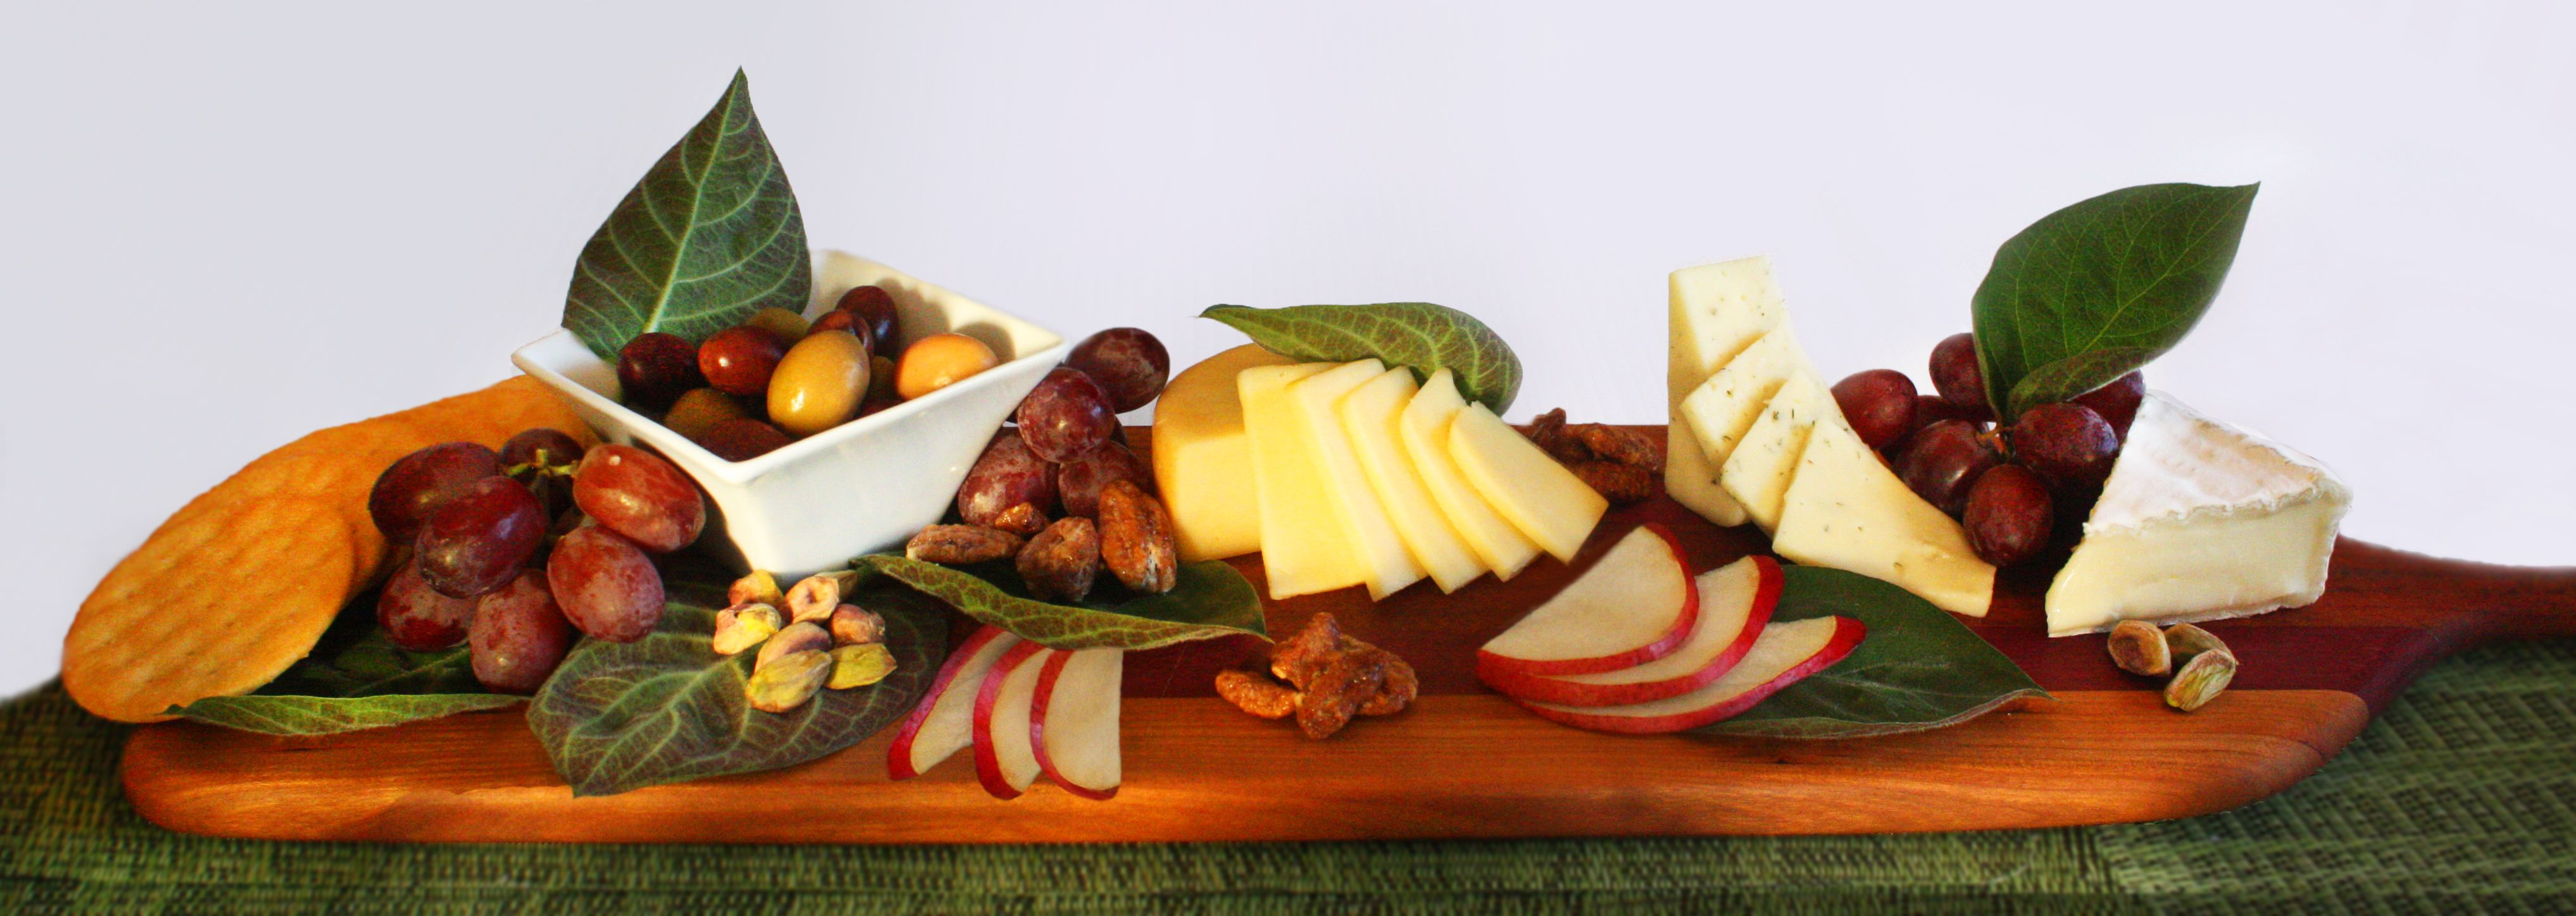 Our Cheese Leaf on a Fruit, Cheese & Nut Plate